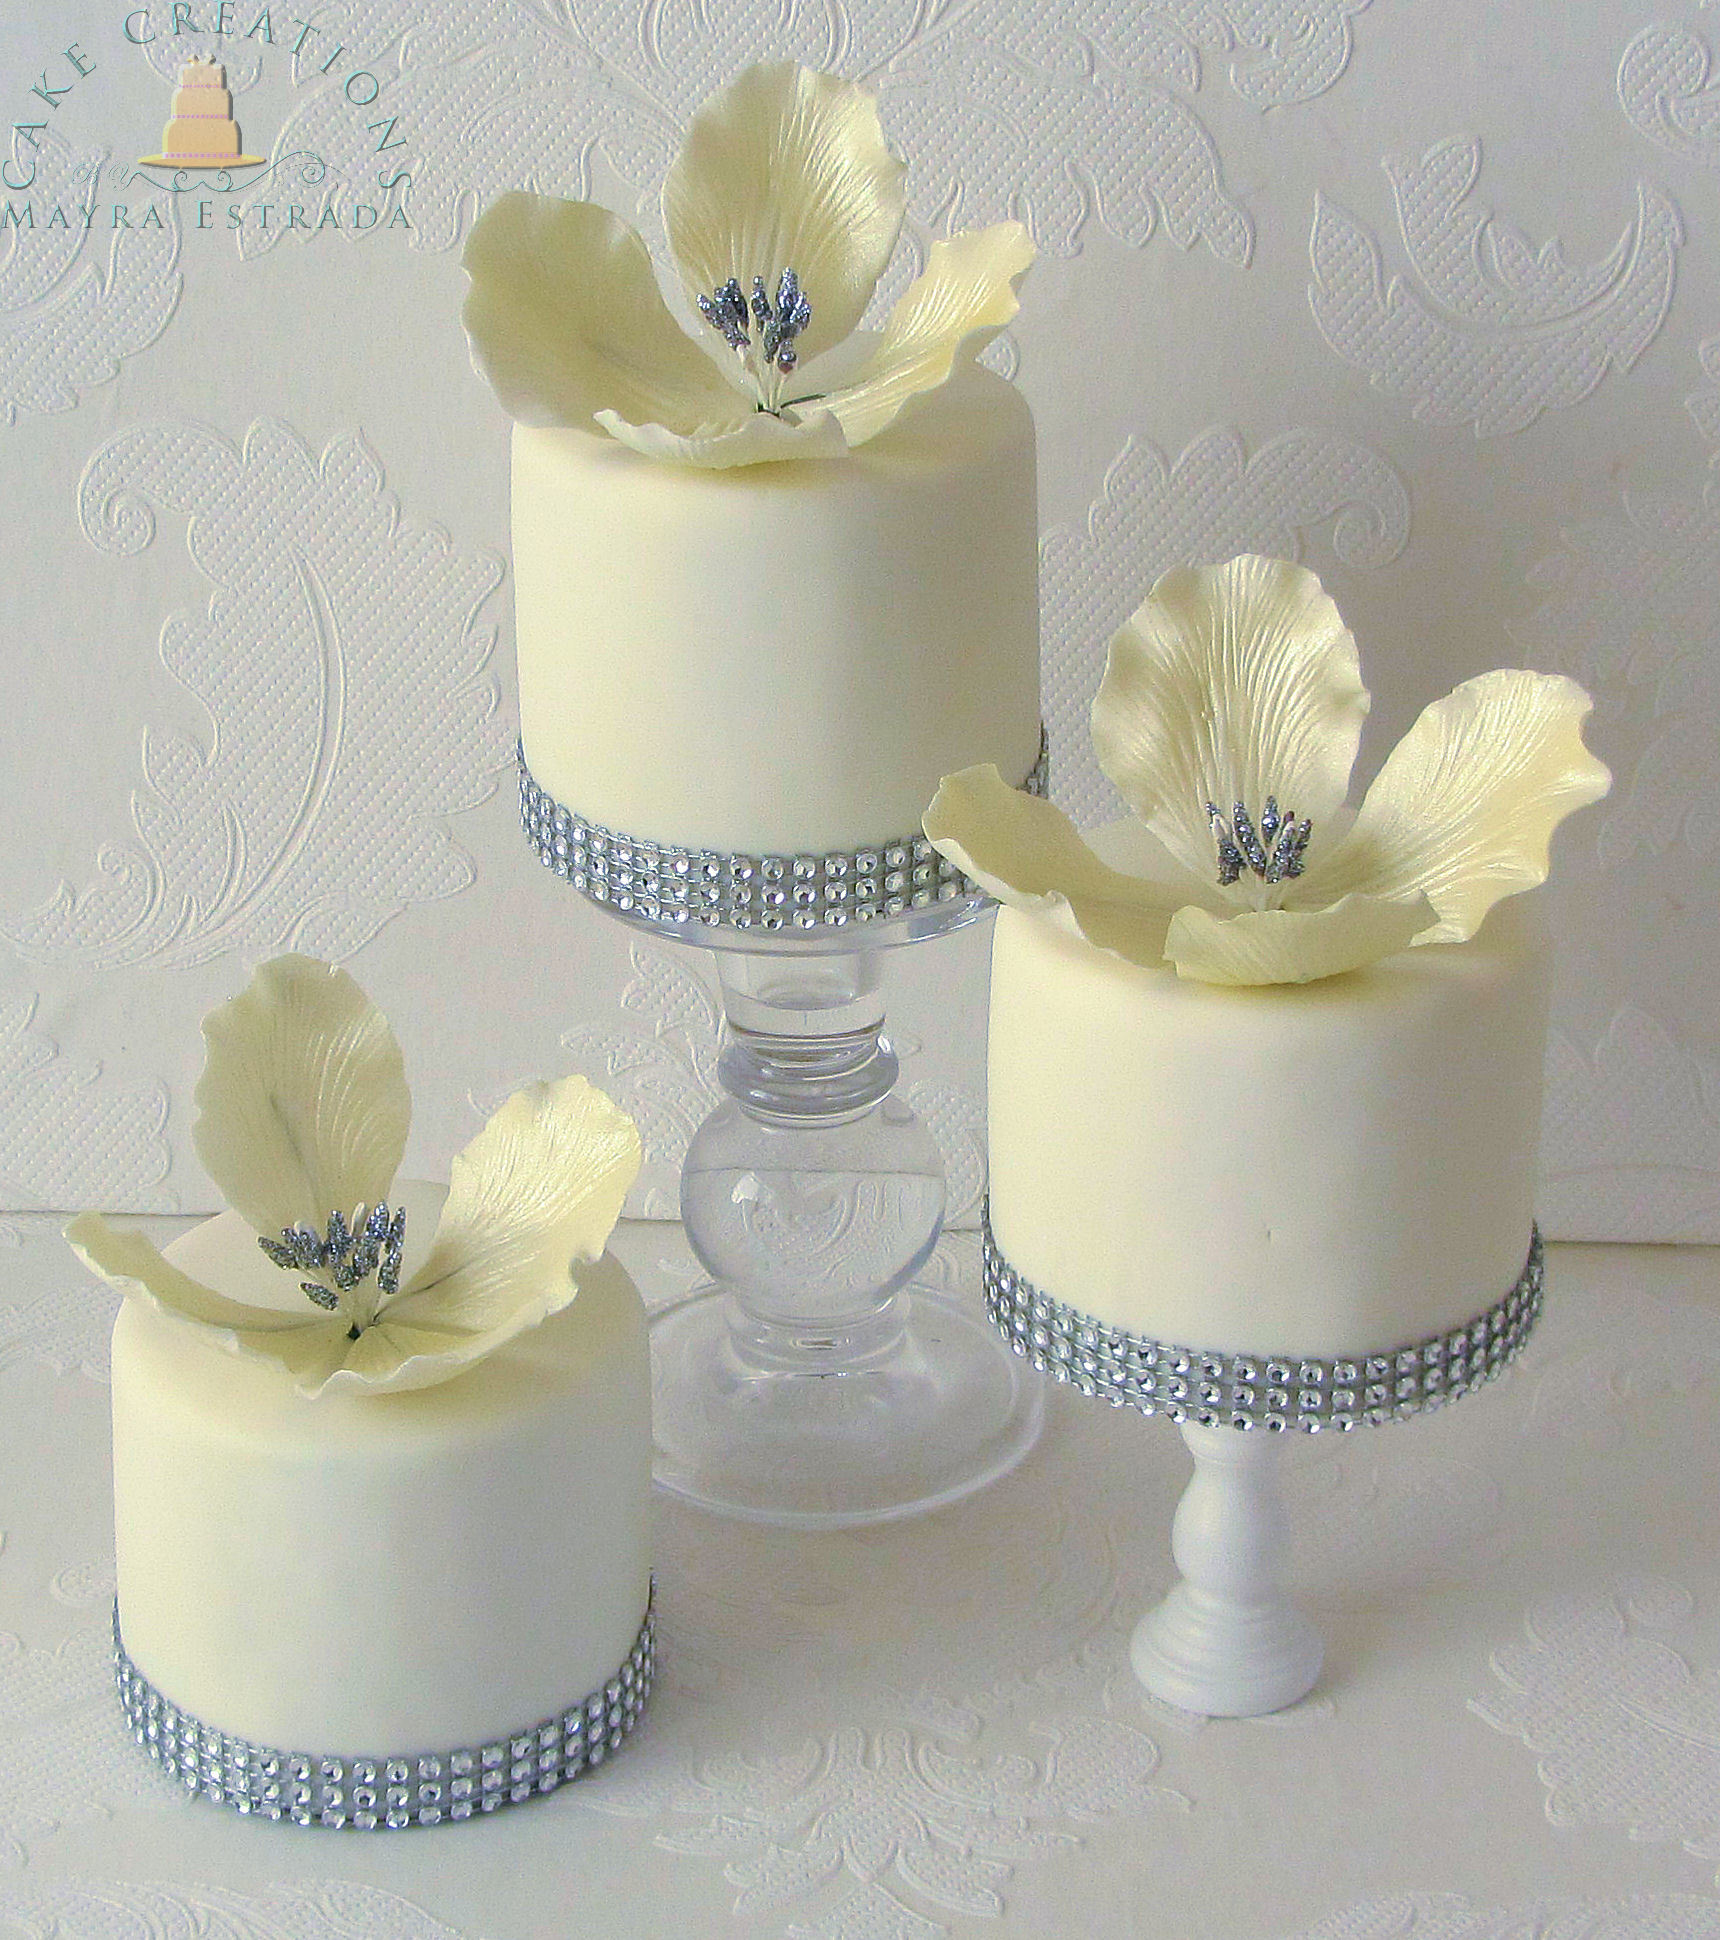 White fondant petite fours with sugar flowers